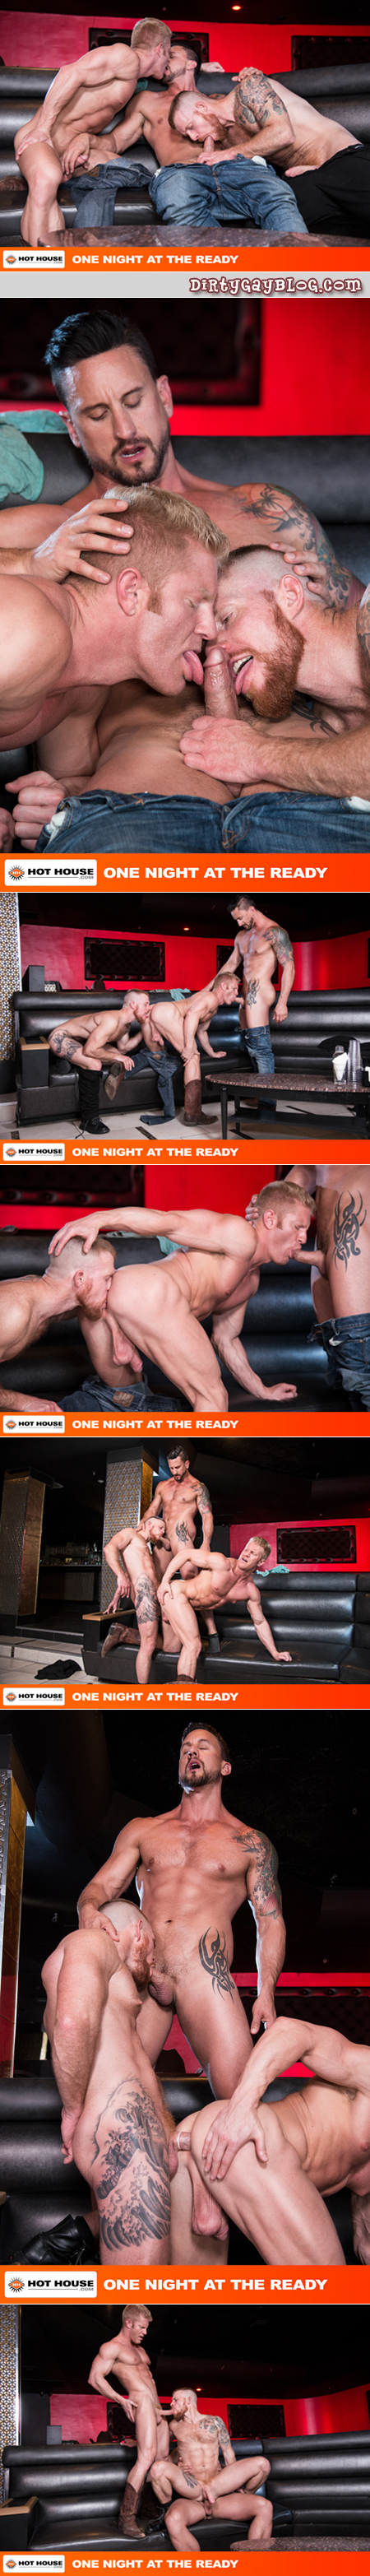 Muscular, tattooed studs having a gay sex threeway with a cowboy.